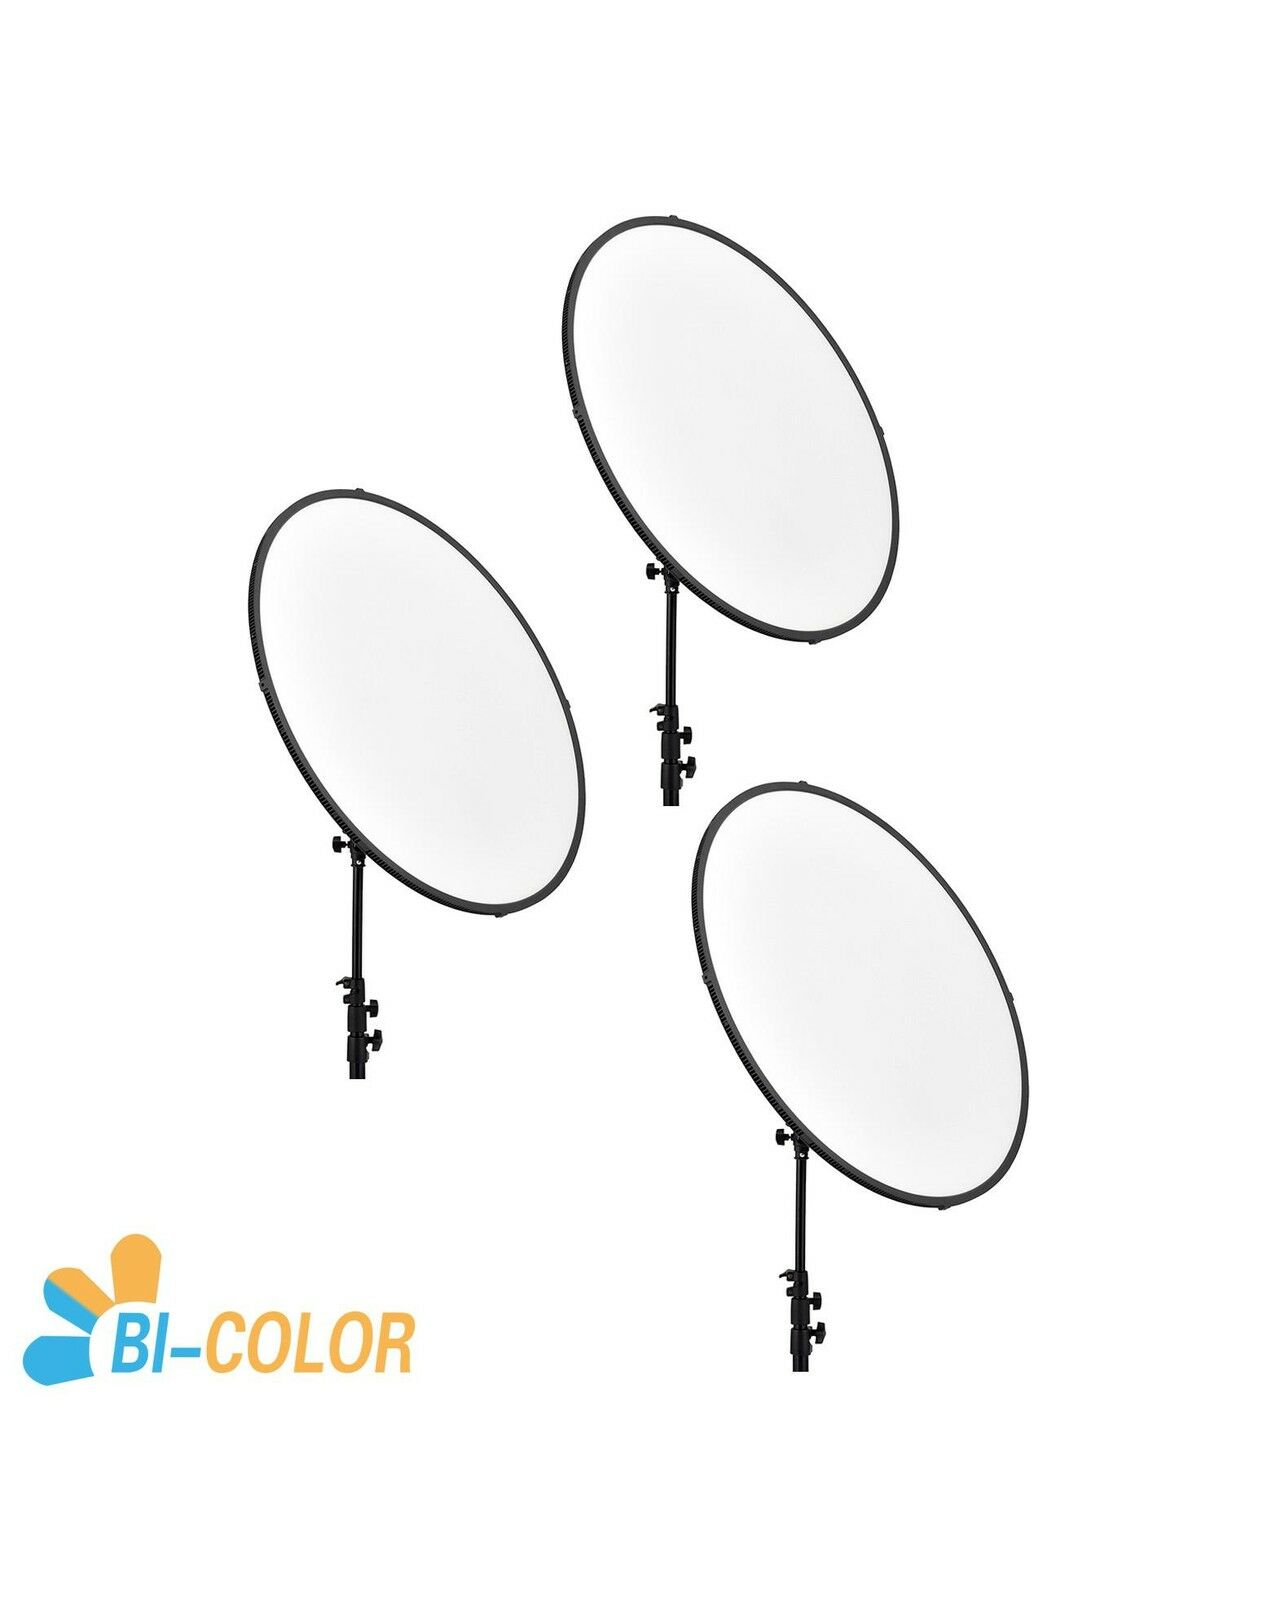 CAME-TV C1500S Bi-Color LED Edge Light (3 Pieces Set) Led Video Lighting